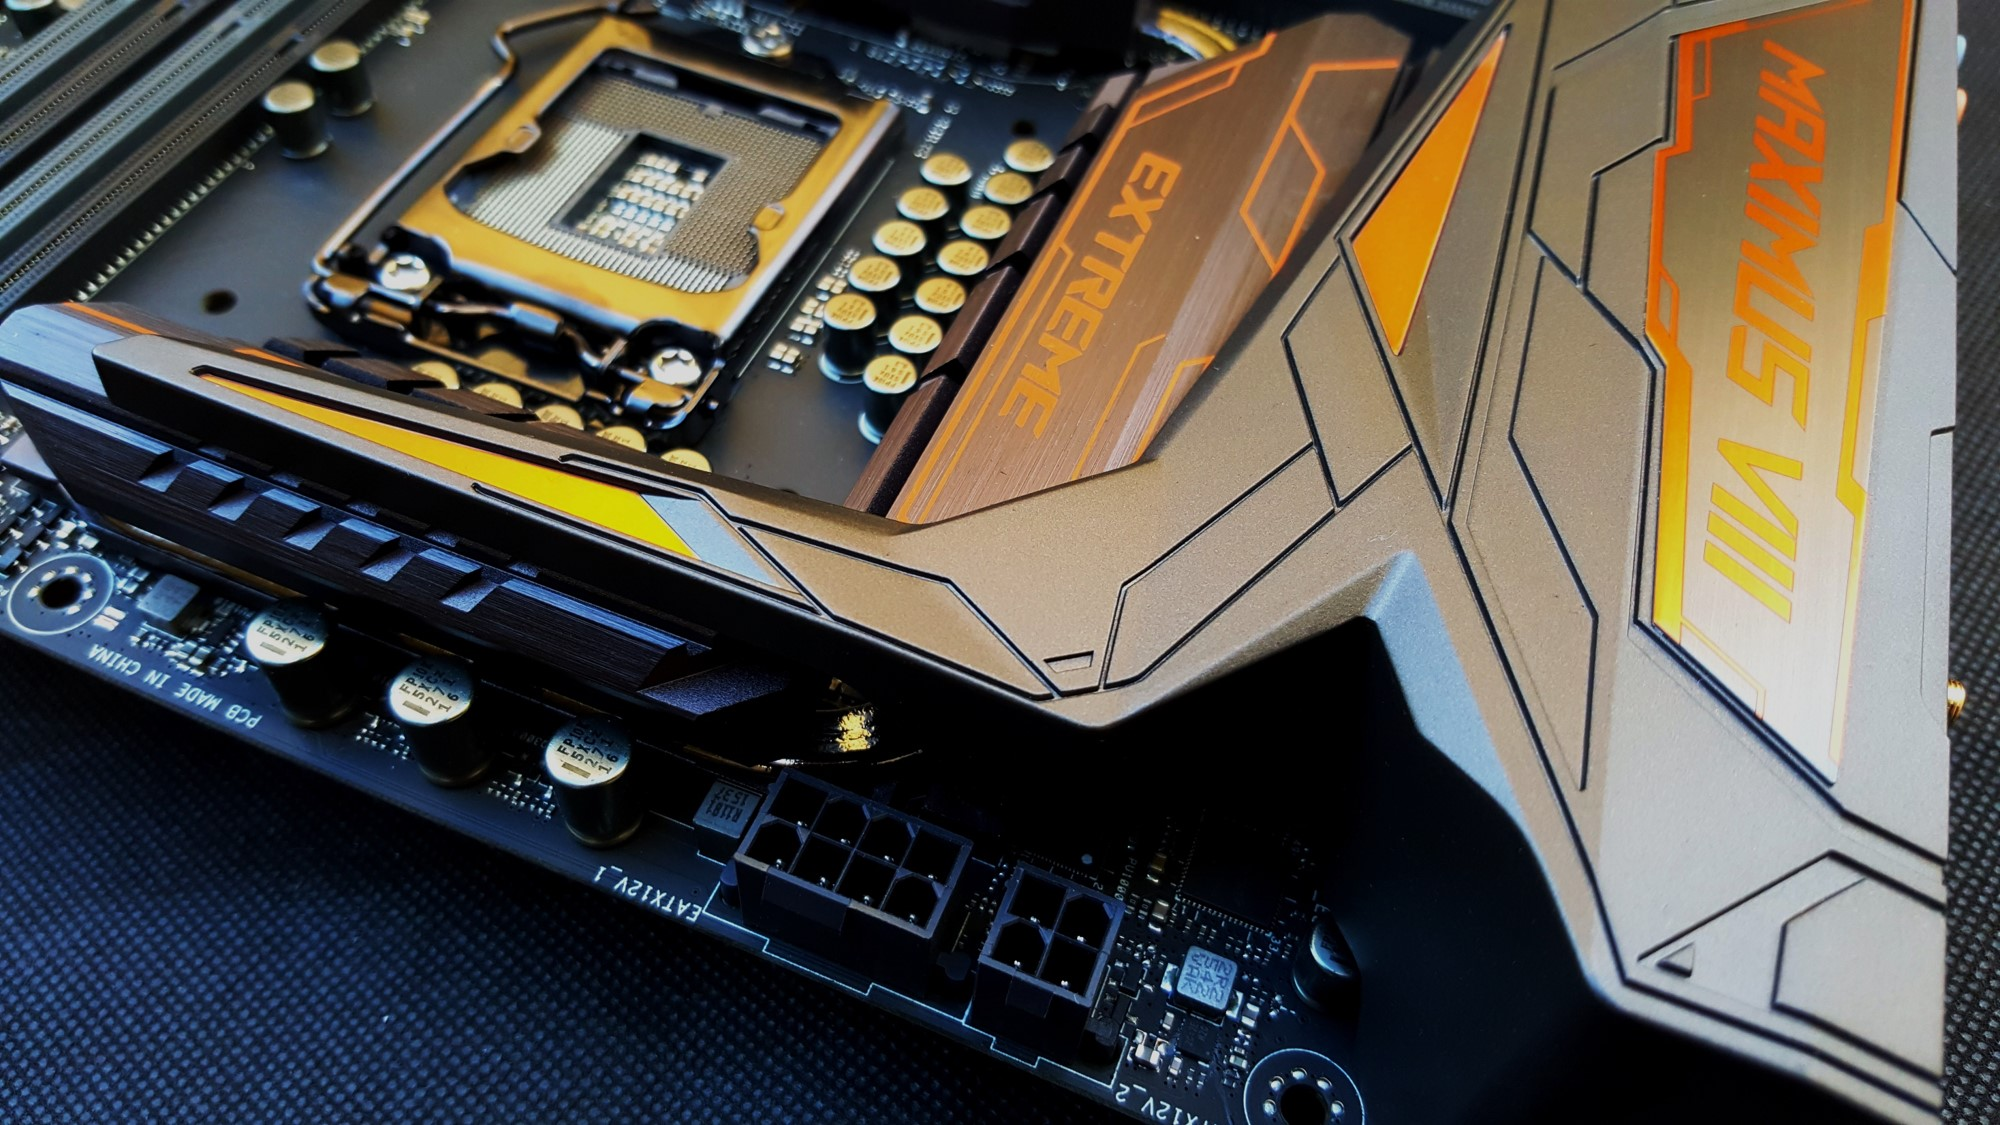 23-Asus Z170 Maximus VIII Extreme Assembly